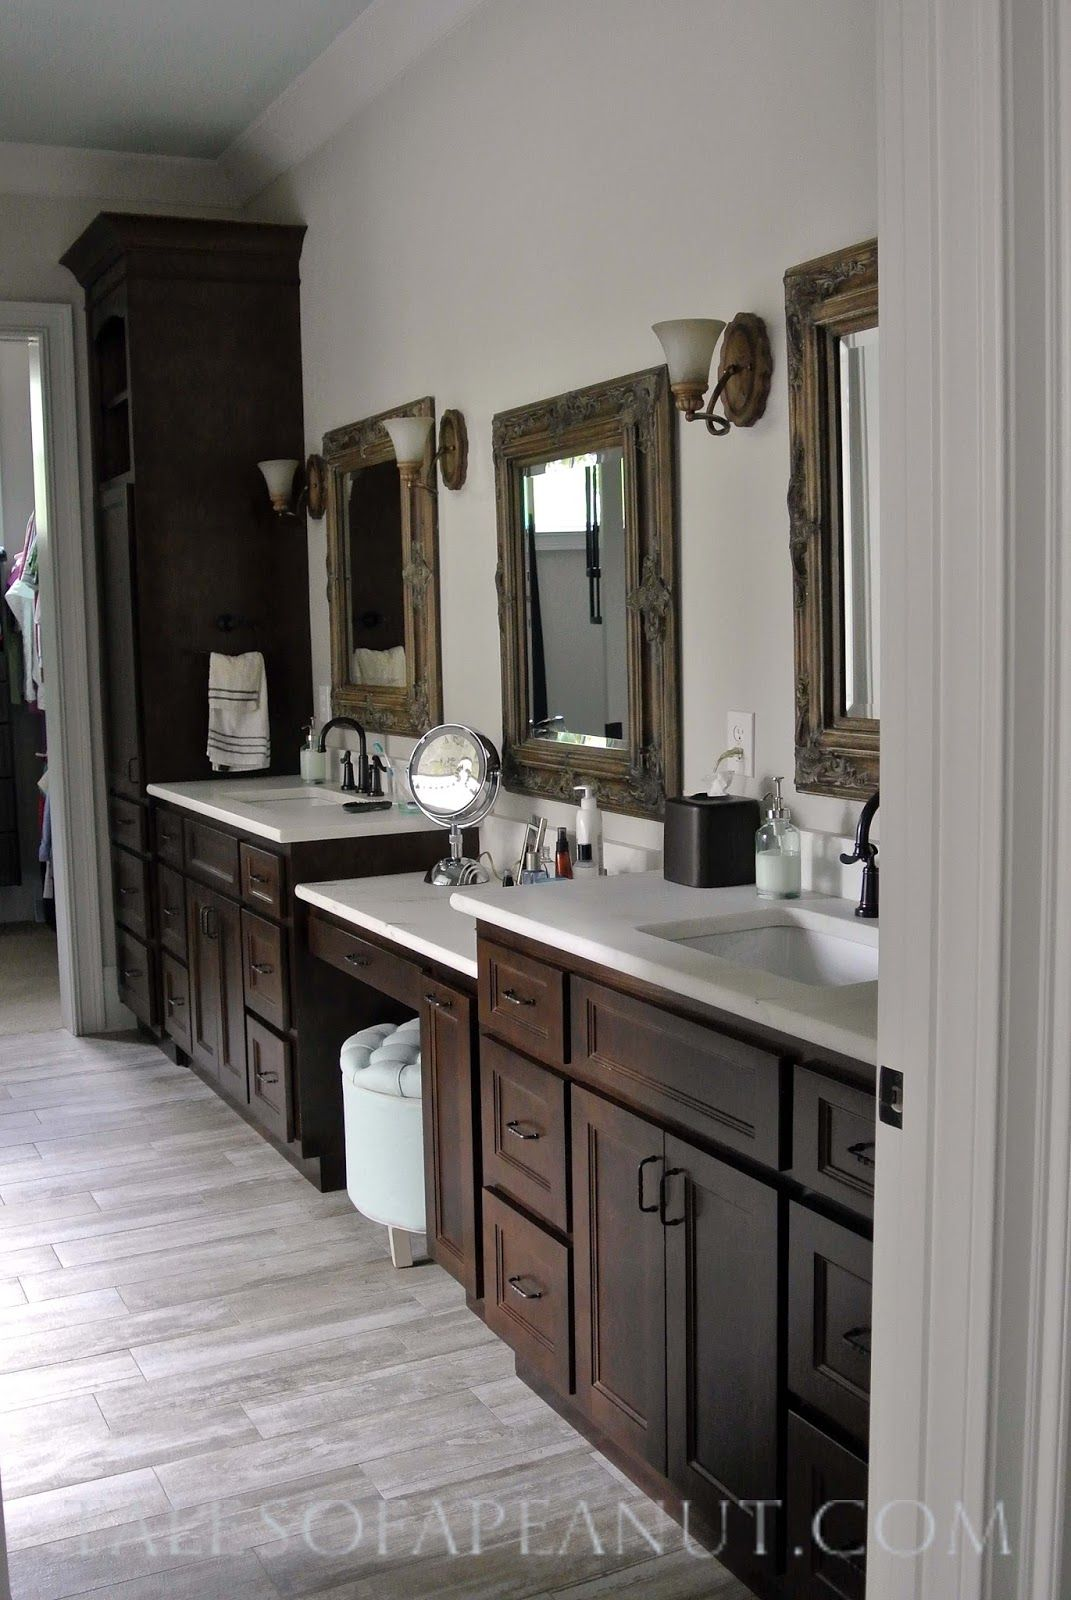 10 More Bathroom Makeovers to Check Out Master bathroom